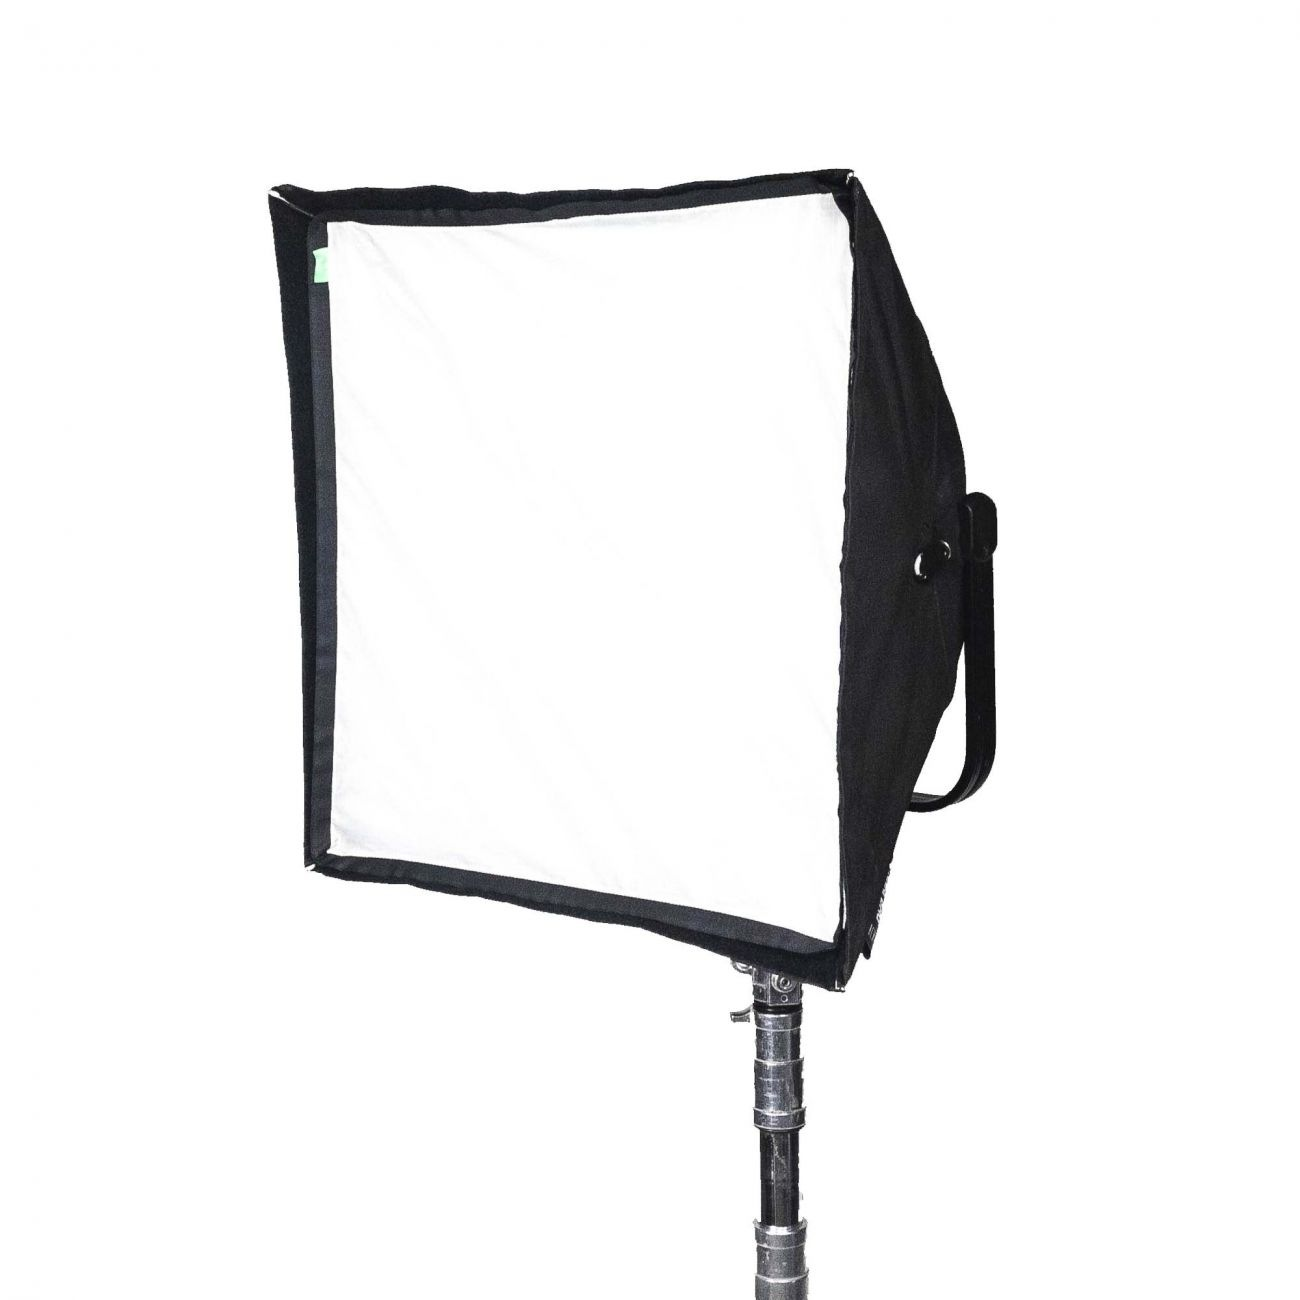 Softbox SnapBag for S30